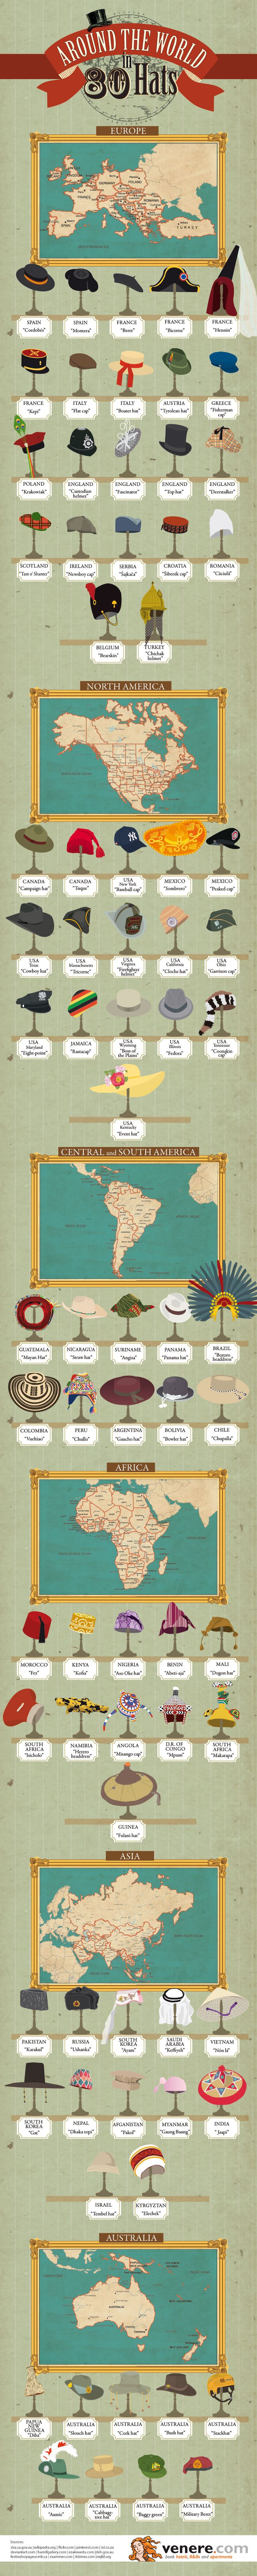 Around the world in 80 hats [infographic]